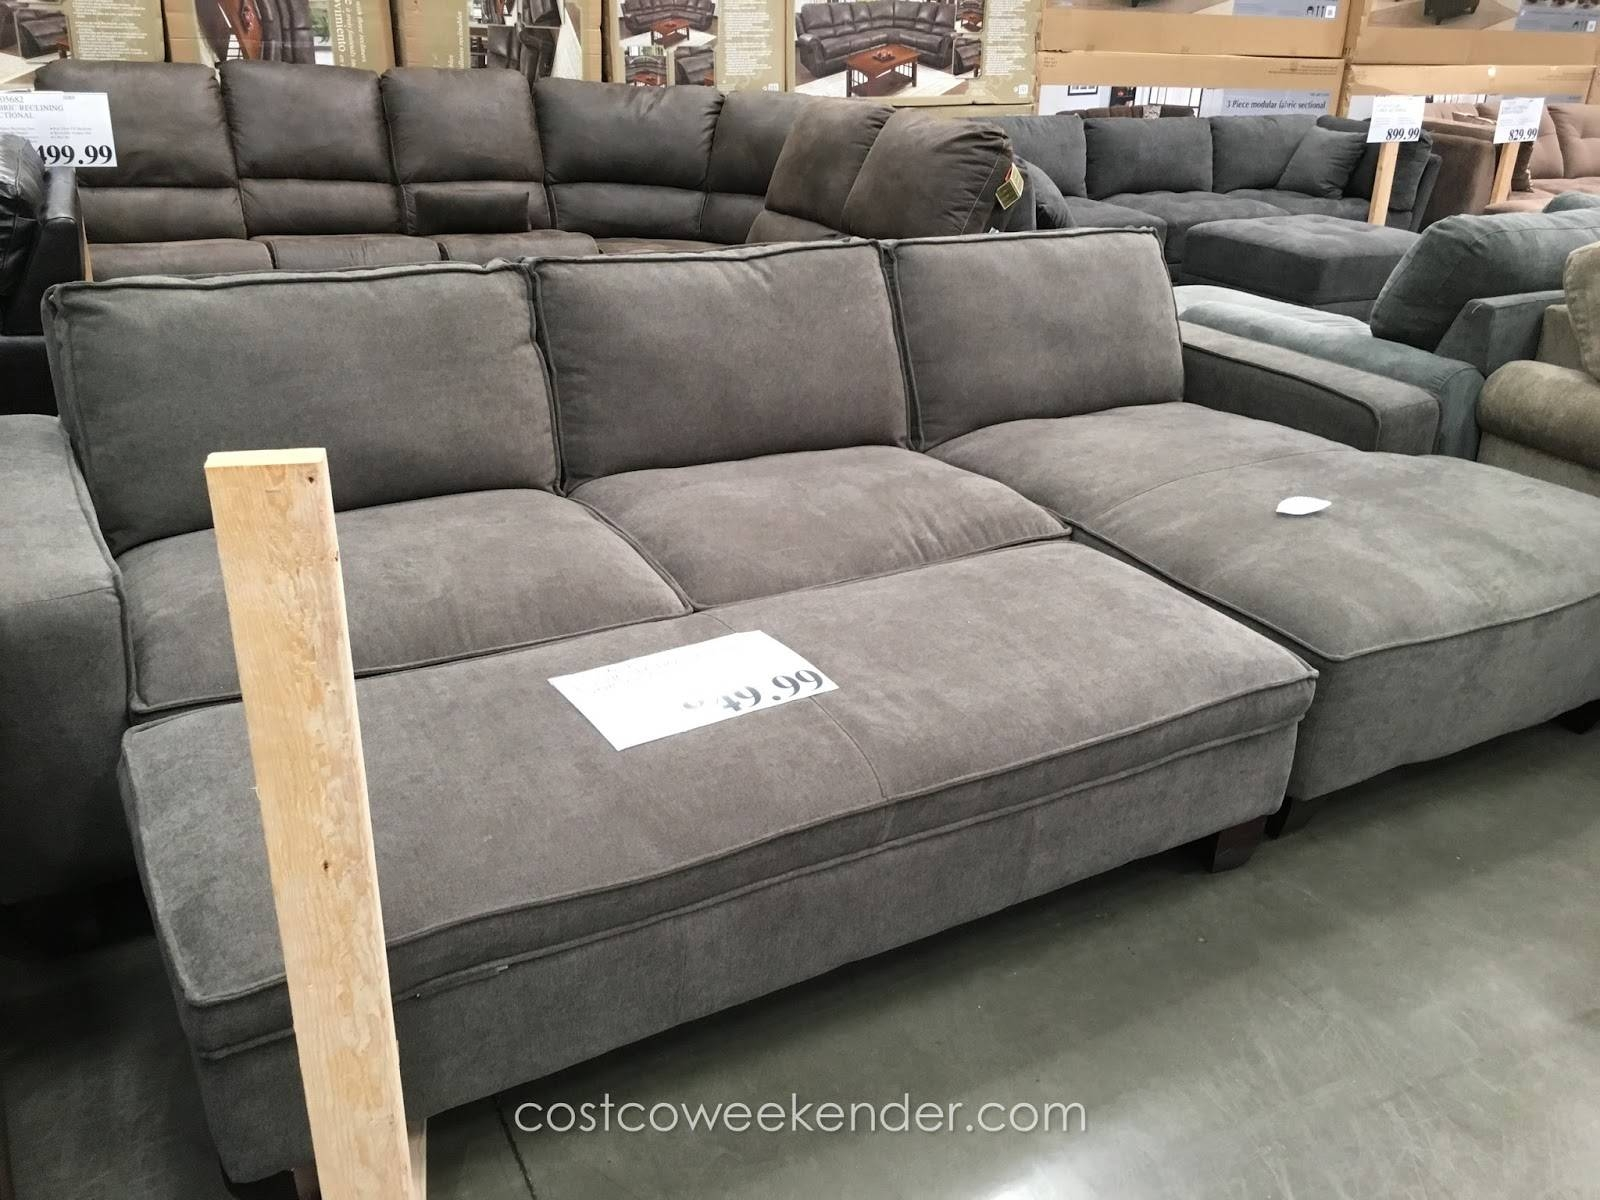 Furniture: Nice Extra Large Sectional Sofa For Large Living Room intended for Long Sectional Sofa With Chaise (Image 7 of 30)